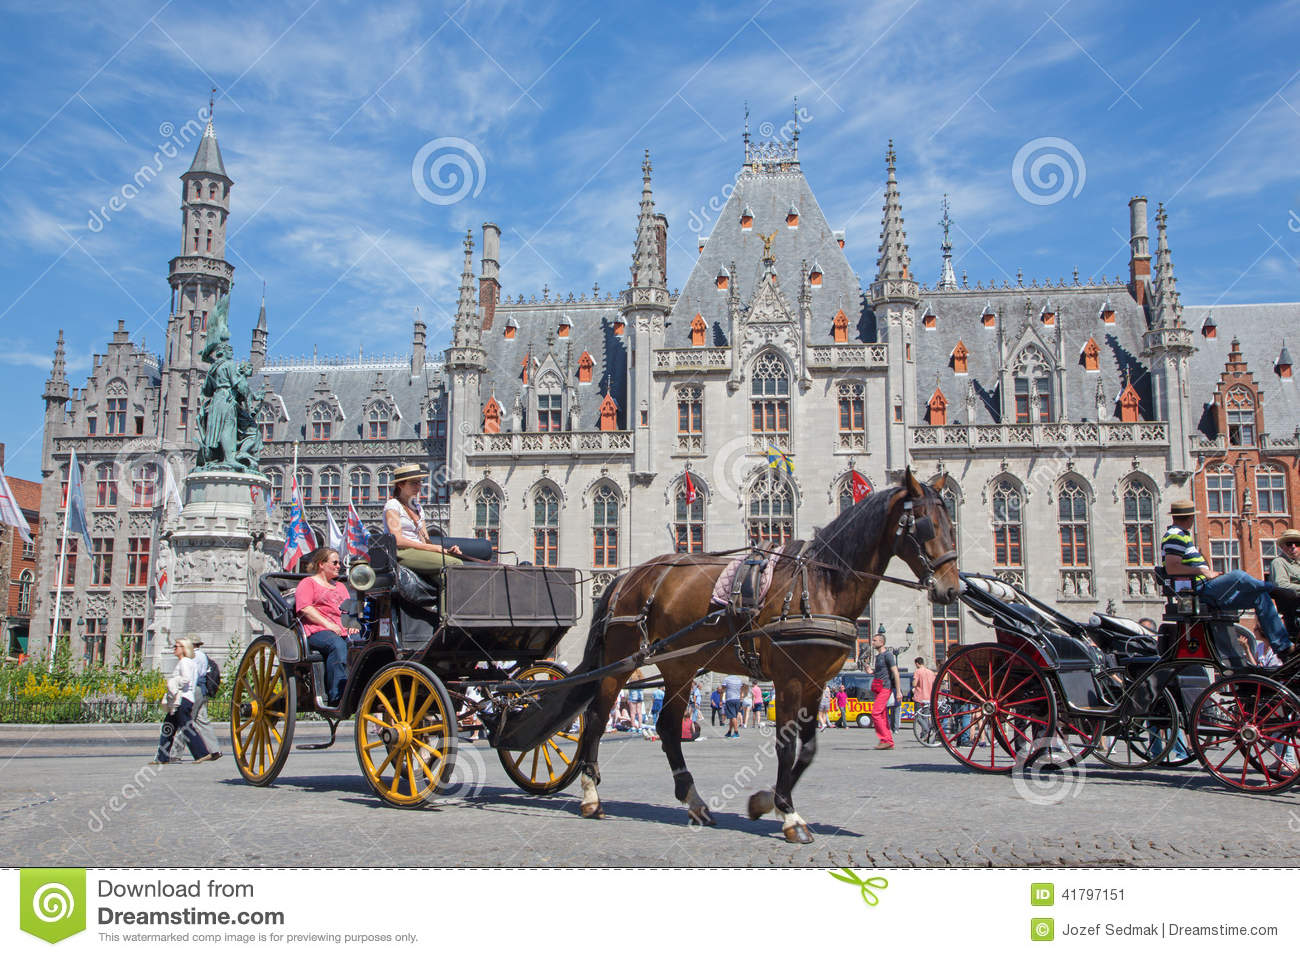 Bruges - The Carriage on the Grote Markt and the Provinciaal Hof building in background.